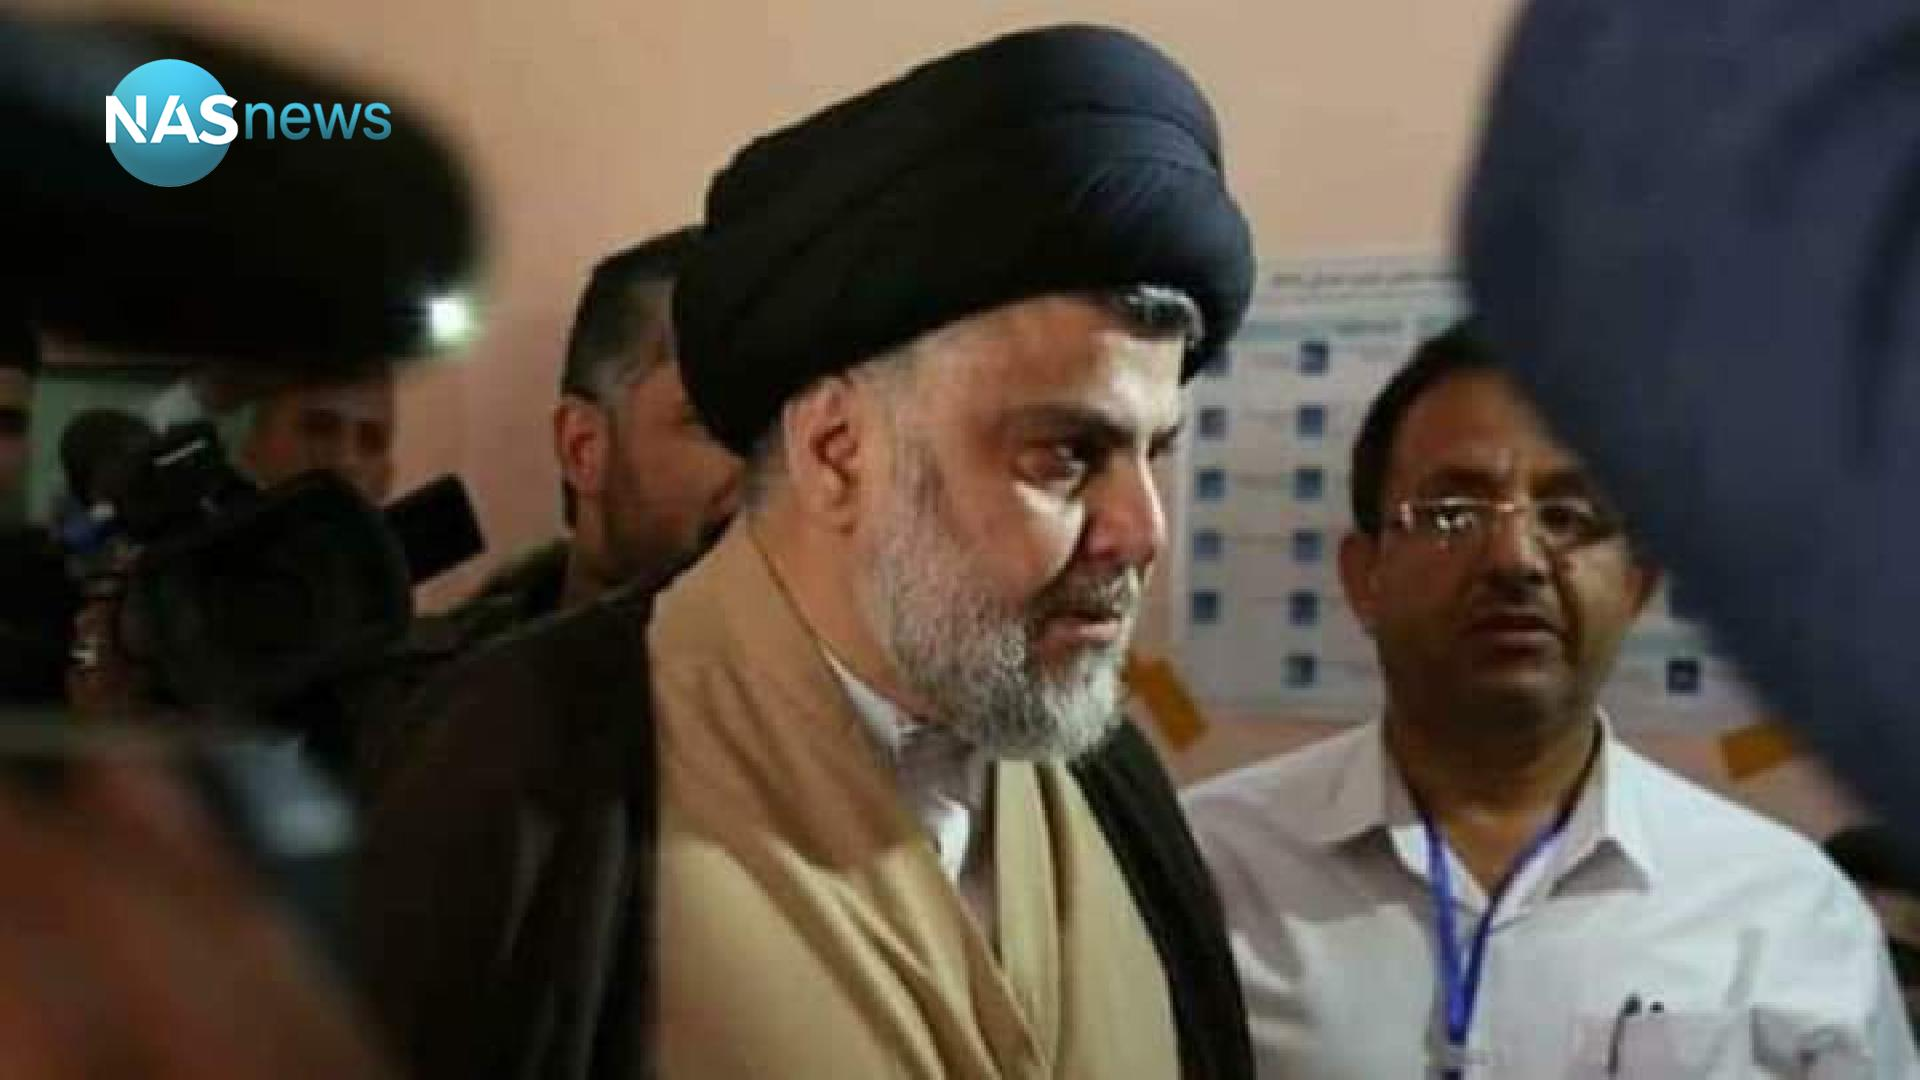 Muqtada al-Sadr talks about the features of the next government